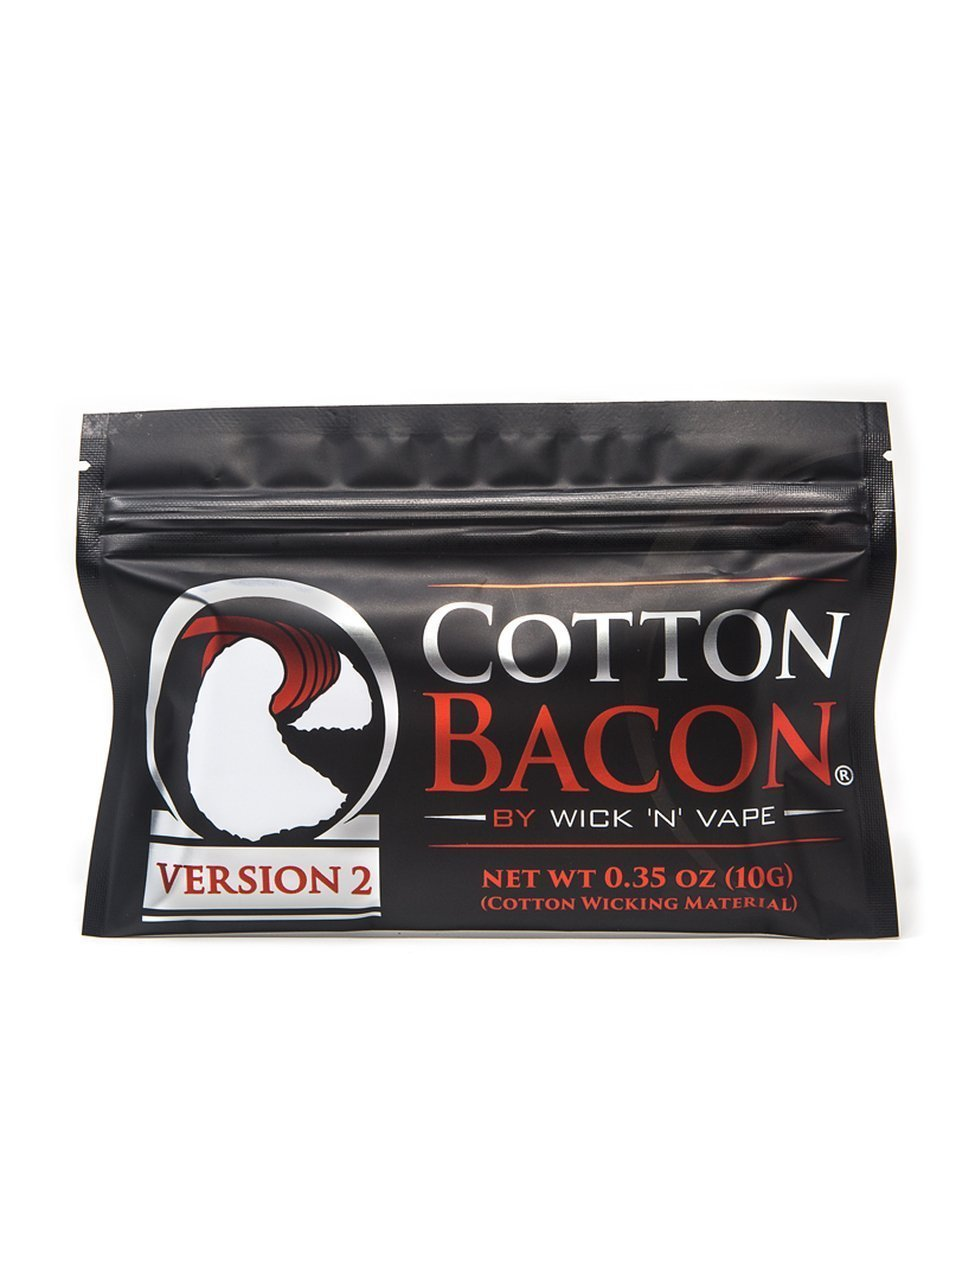 wick n' vape cotton bacon